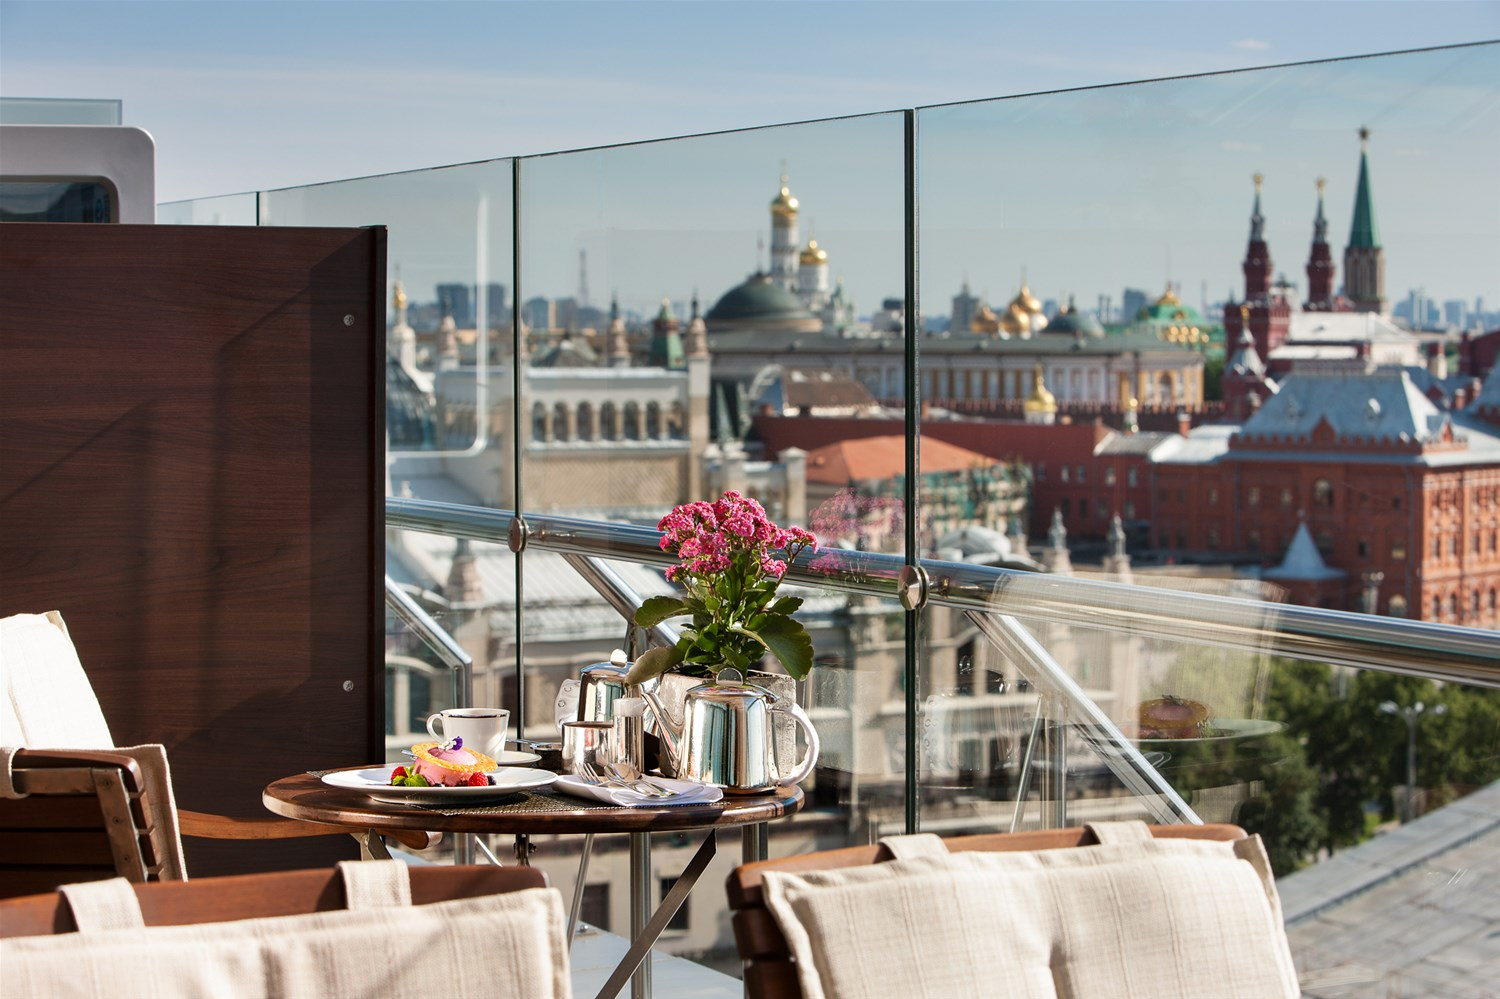 ararat hotel of Moscow city guide moscow city guide MOSCOW CITY GUIDE Ararat Park Hyatt Moscow P